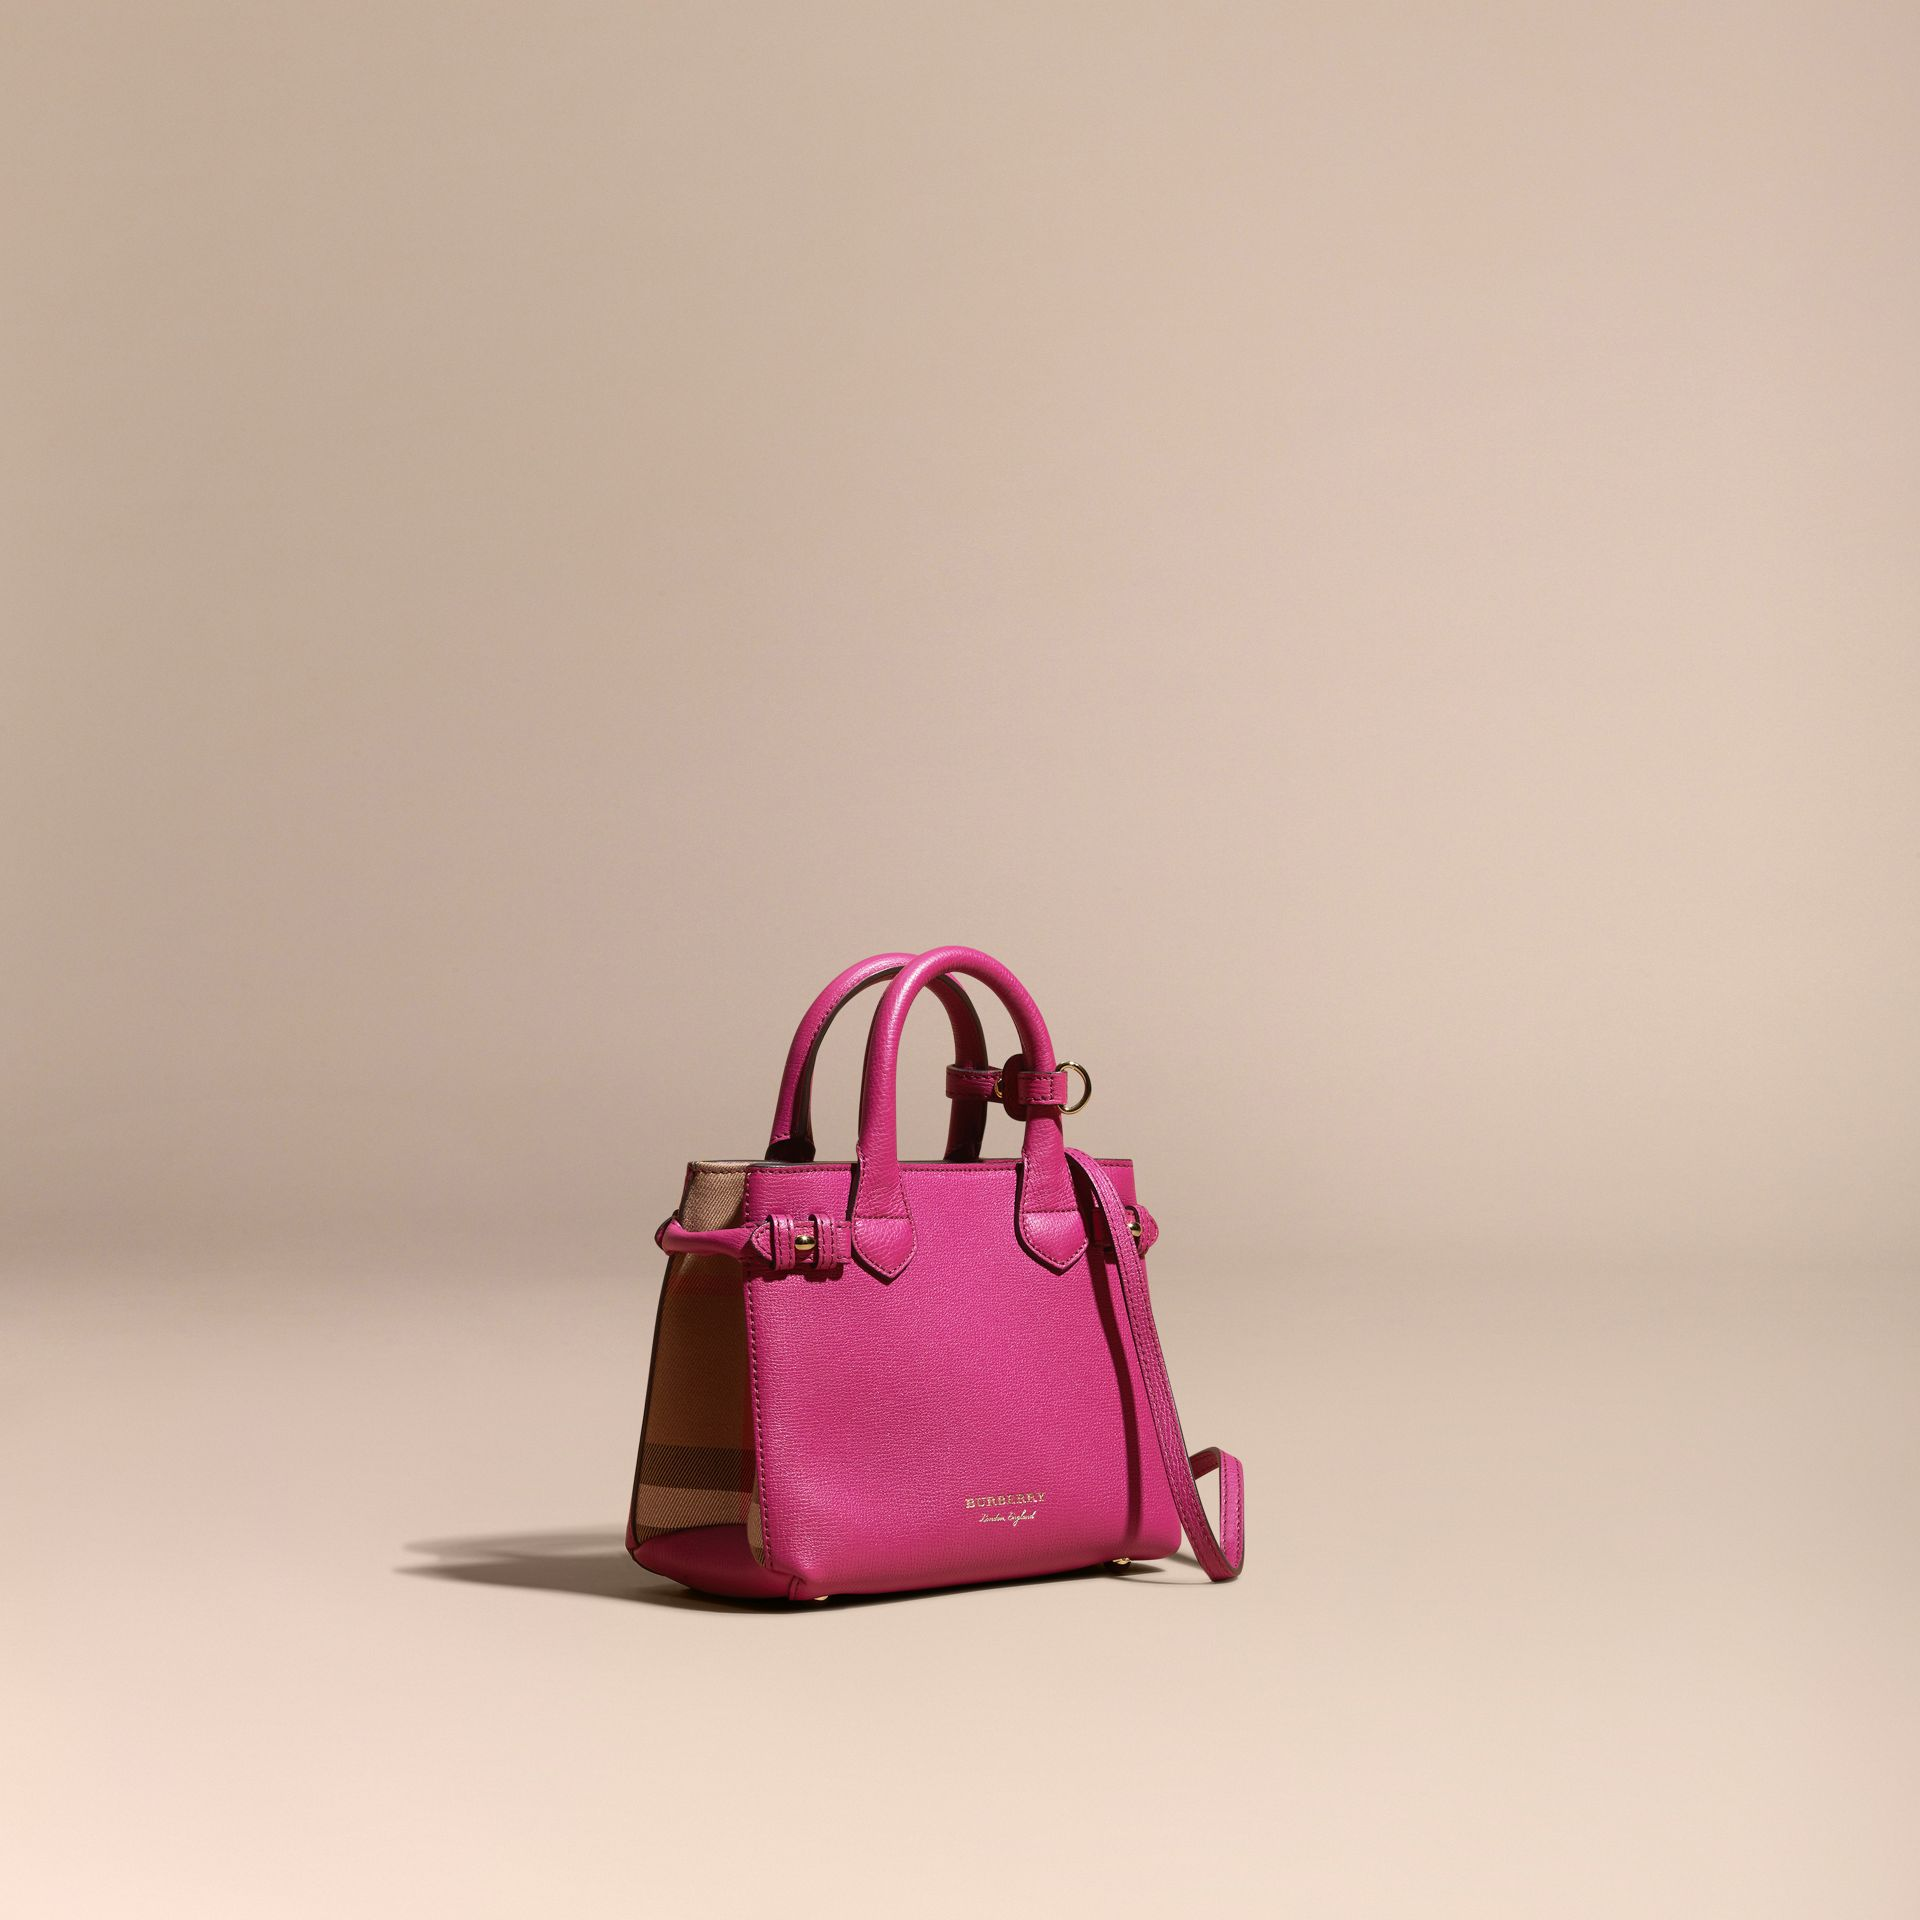 Fuchsia vif Sac The Baby Banner en cuir et coton House check Fuchsia Vif - photo de la galerie 1